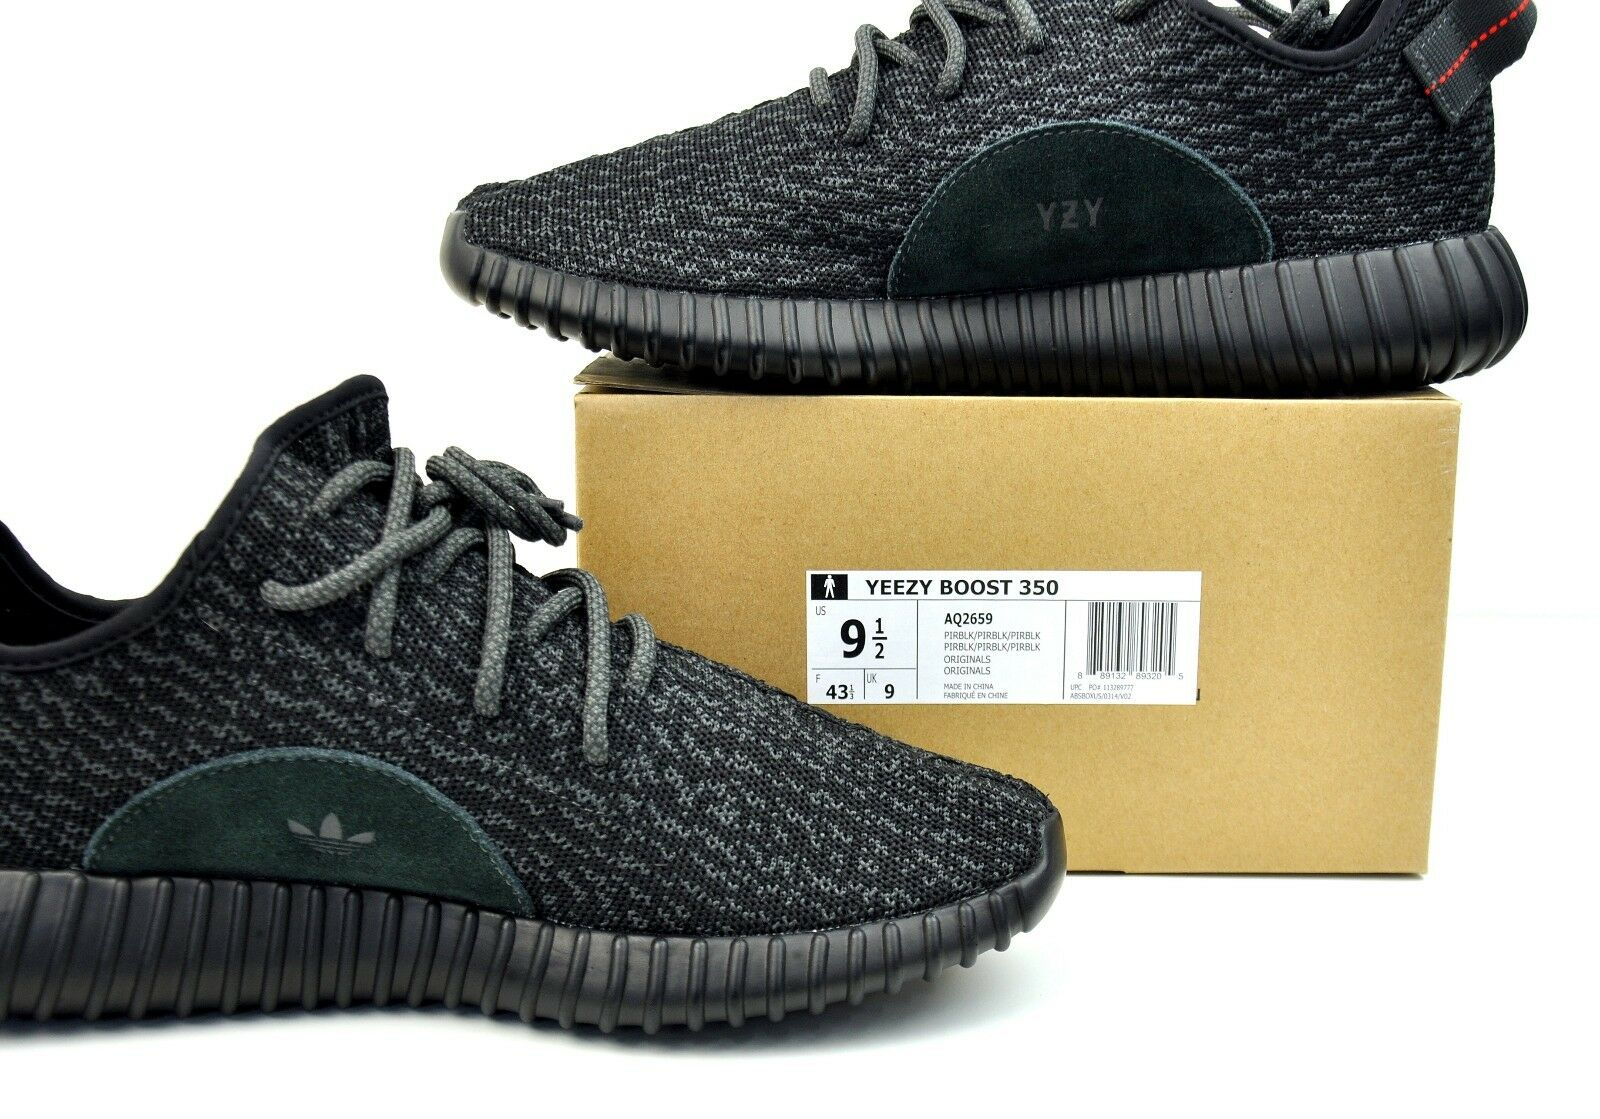 49d4e2074b9c ... Adidas Yeezy Boost 350 V1 Pirate Black 2015 AQ2659 Used